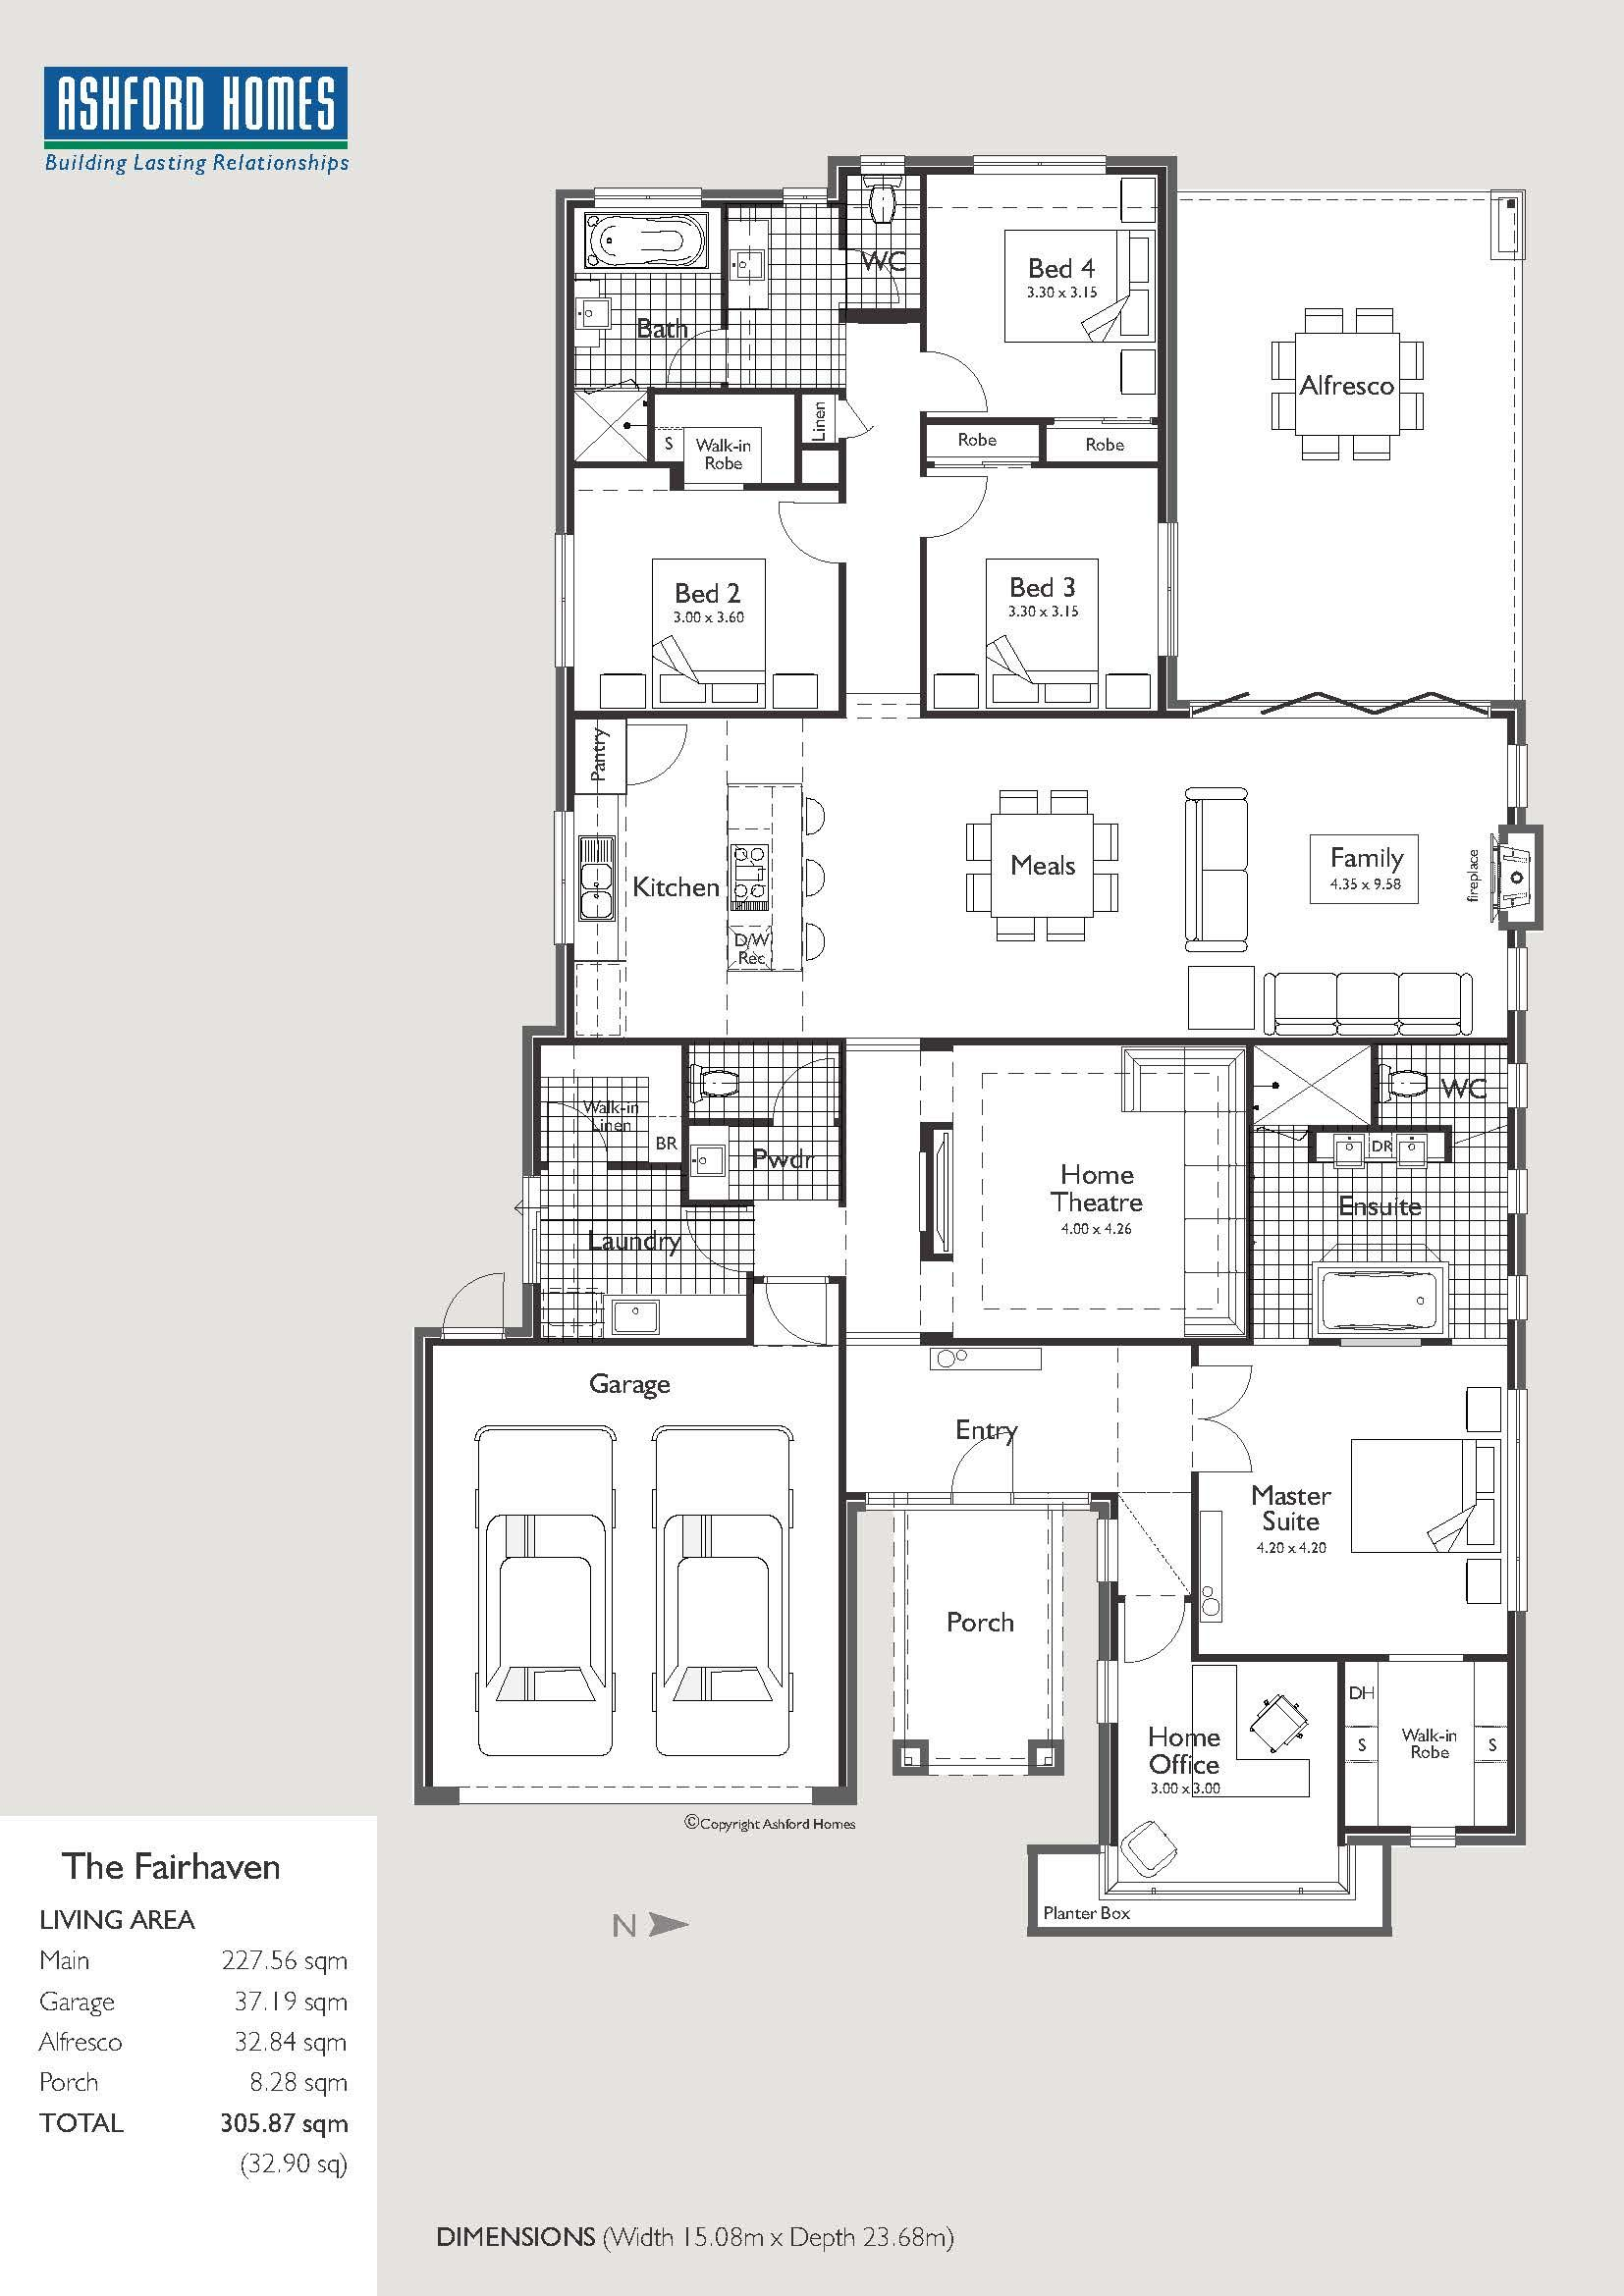 Modern house with nice fitting interior also fairhaven floorplan pinterest and interiors rh za